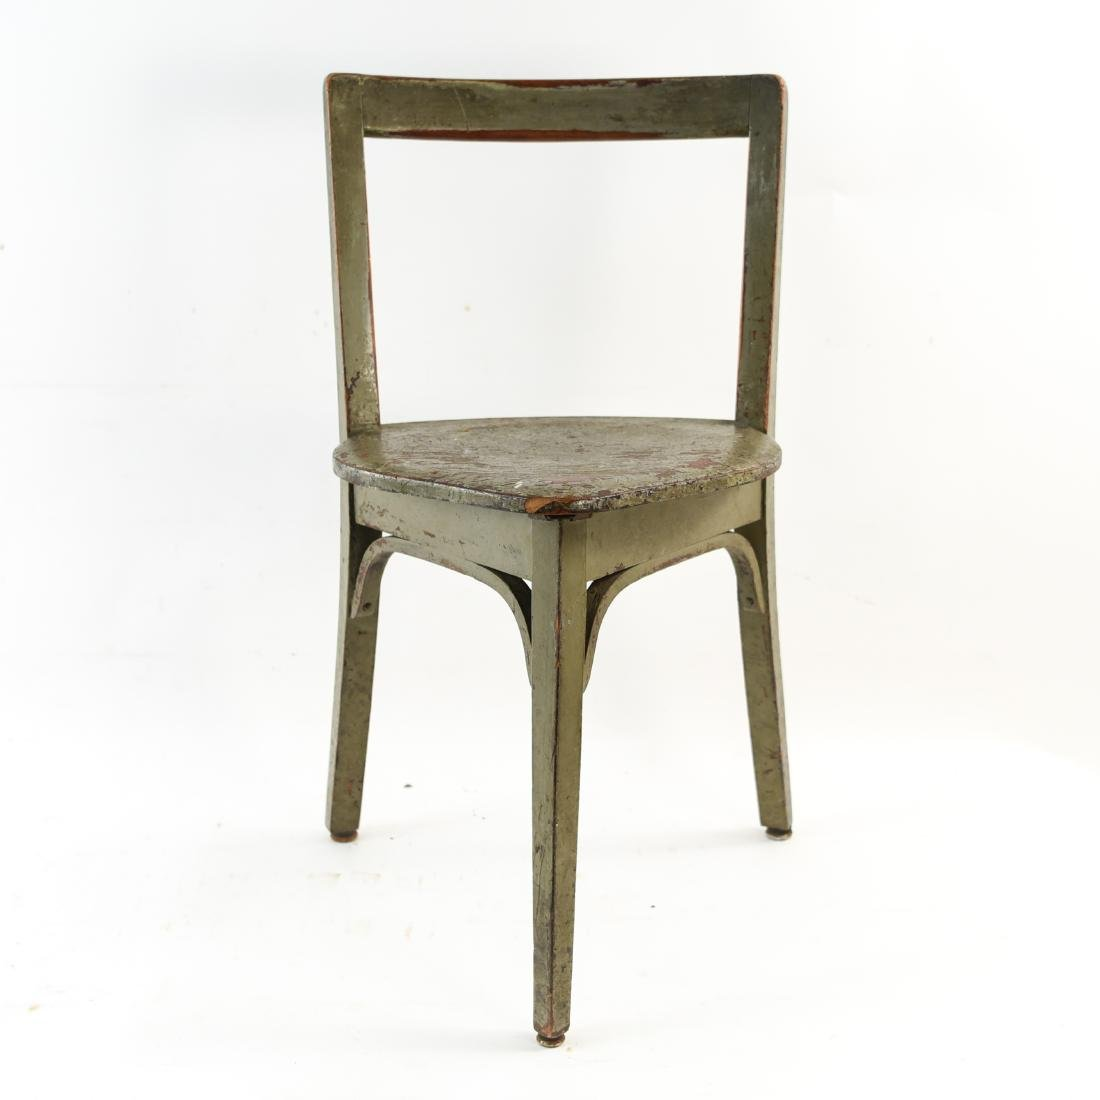 VINTAGE THREE LEGGED CHAIR OLD PAINT